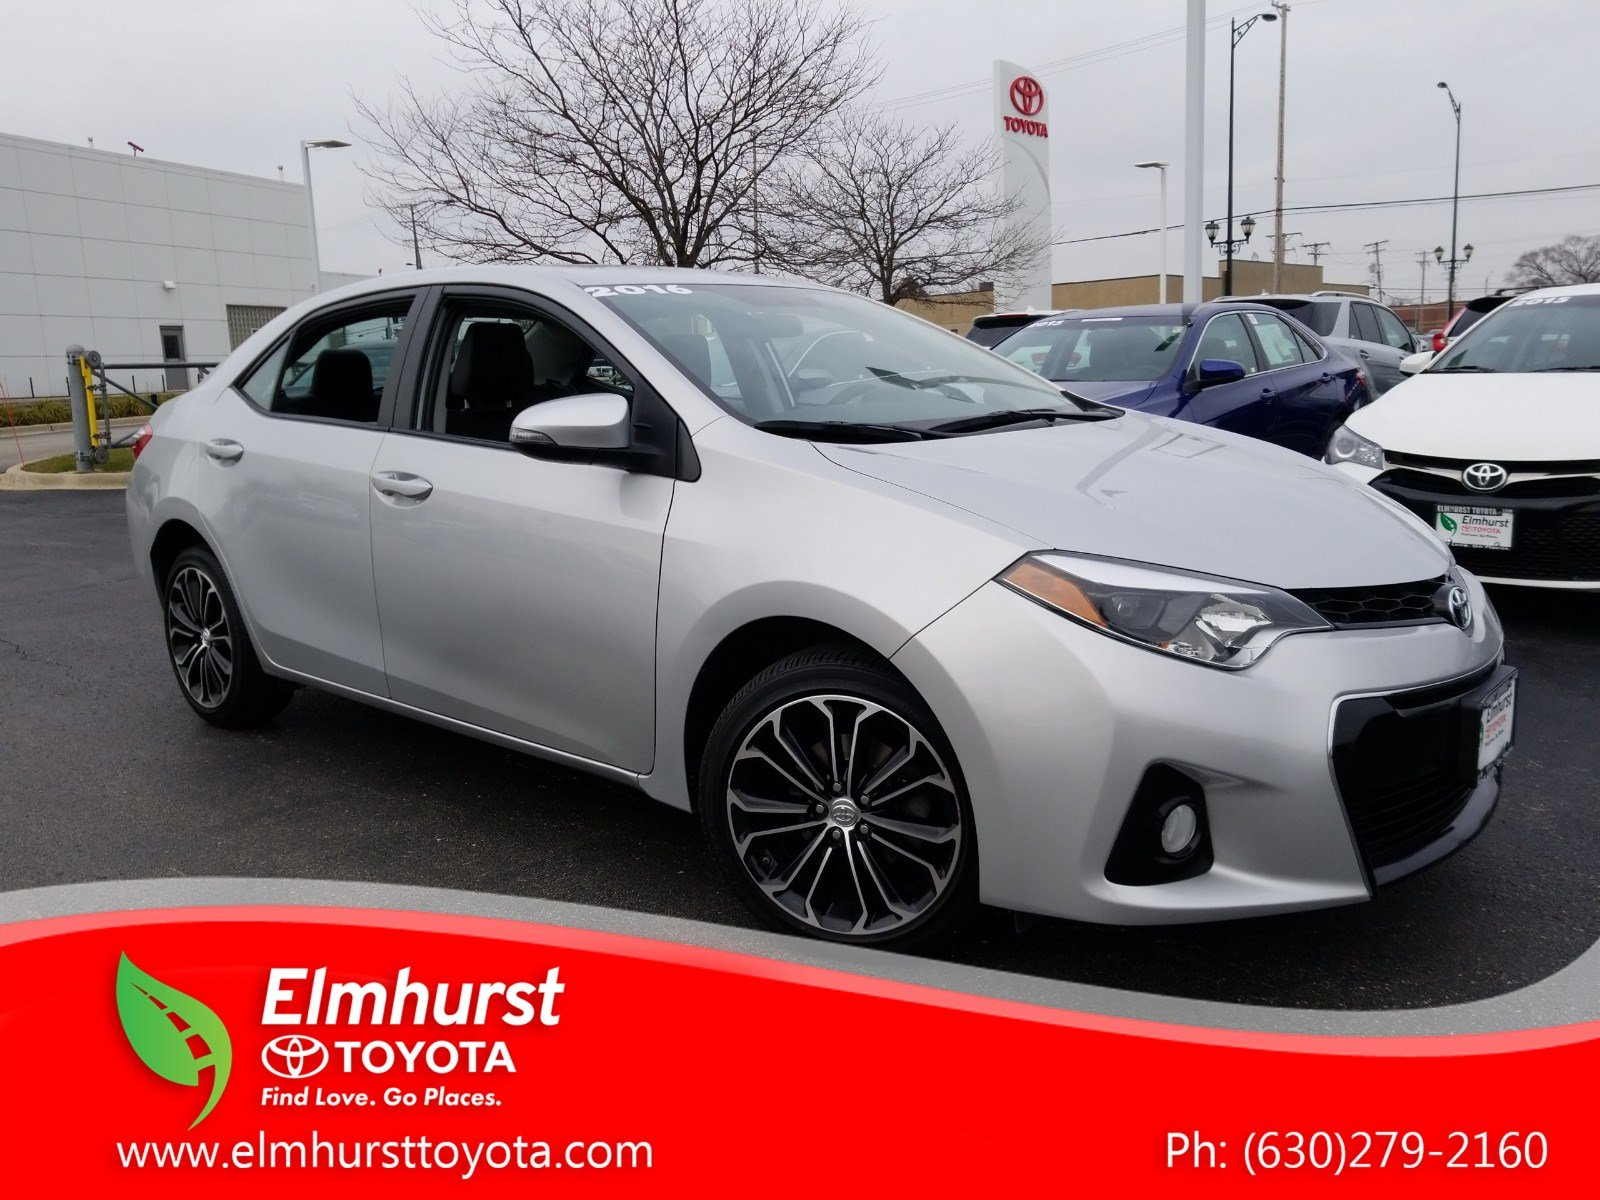 Pre Owned 2016 Toyota Corolla S Plus 4D Sedan in Elmhurst 8863P